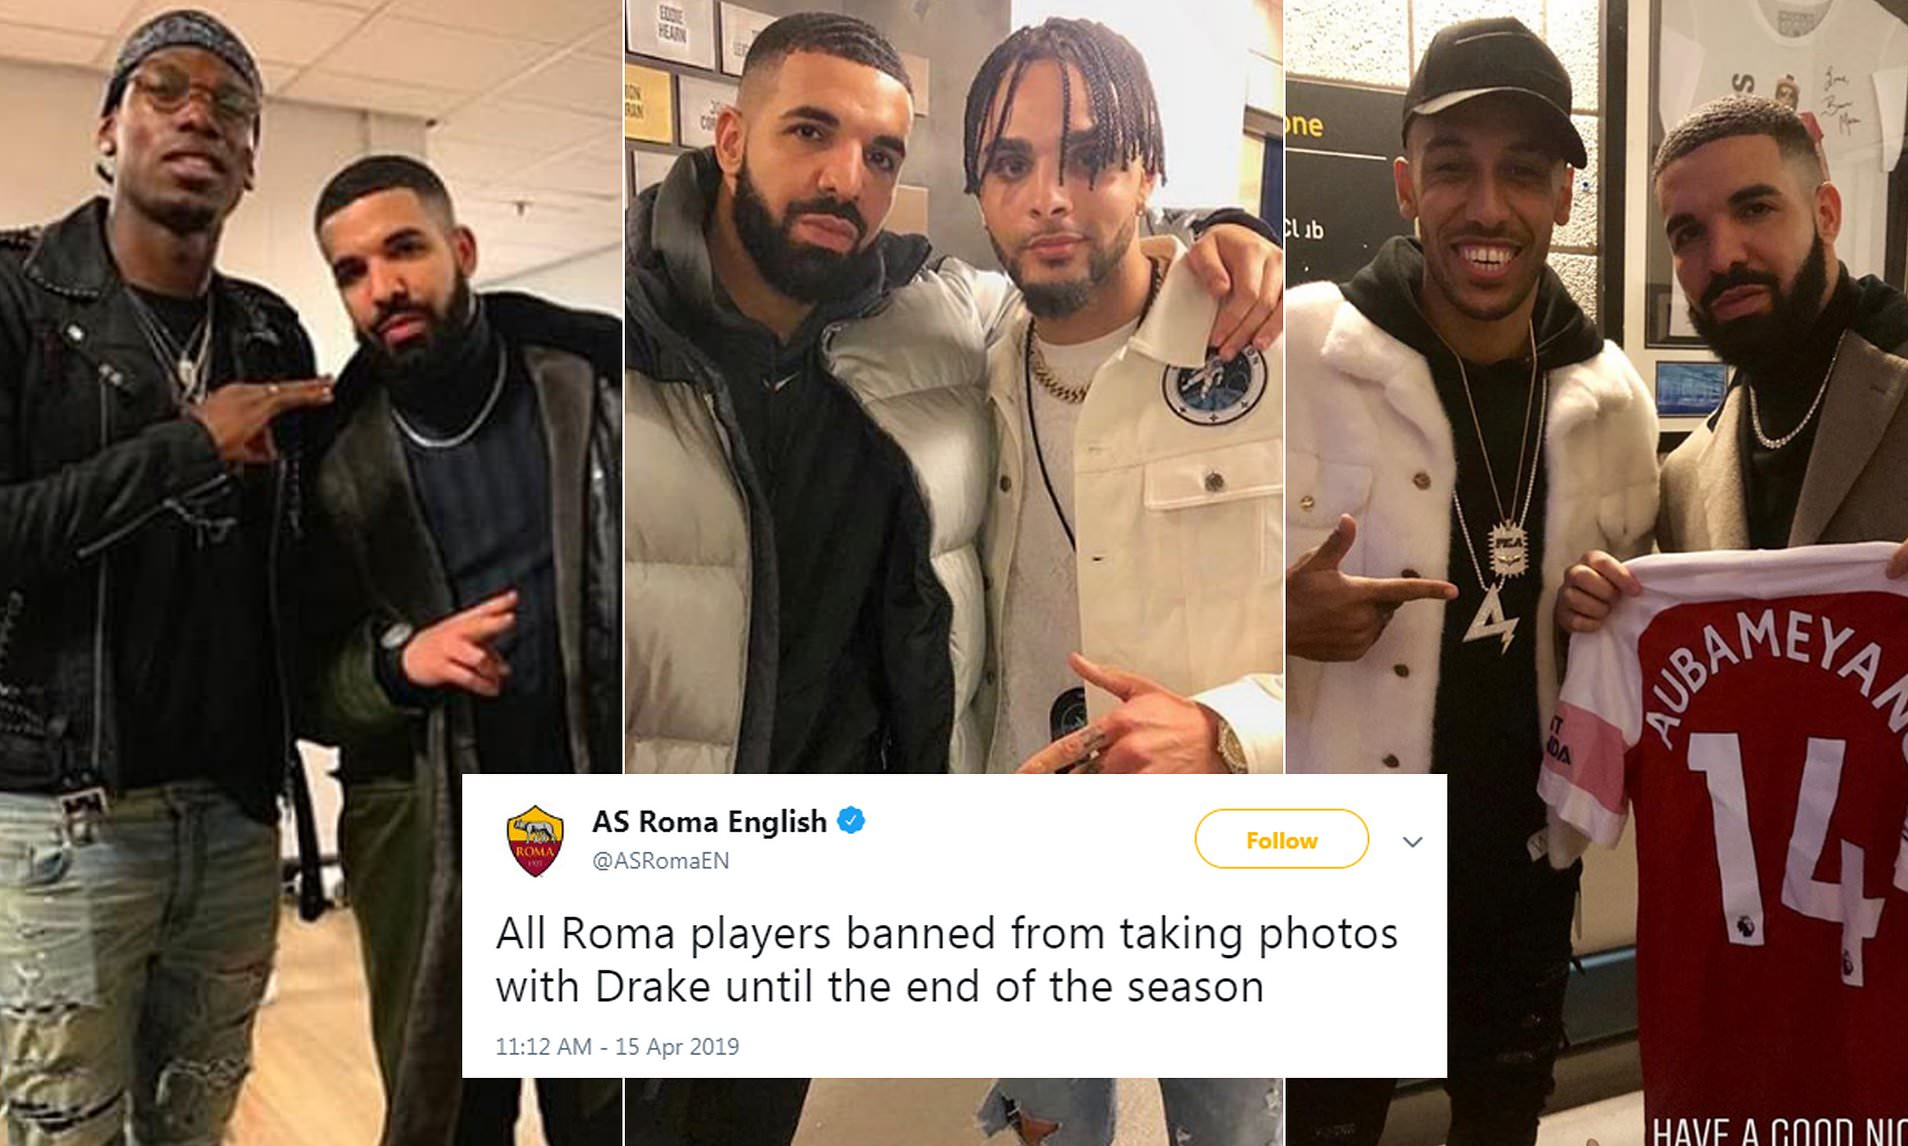 AS Roma hilariously ban all players from getting picture with Drake